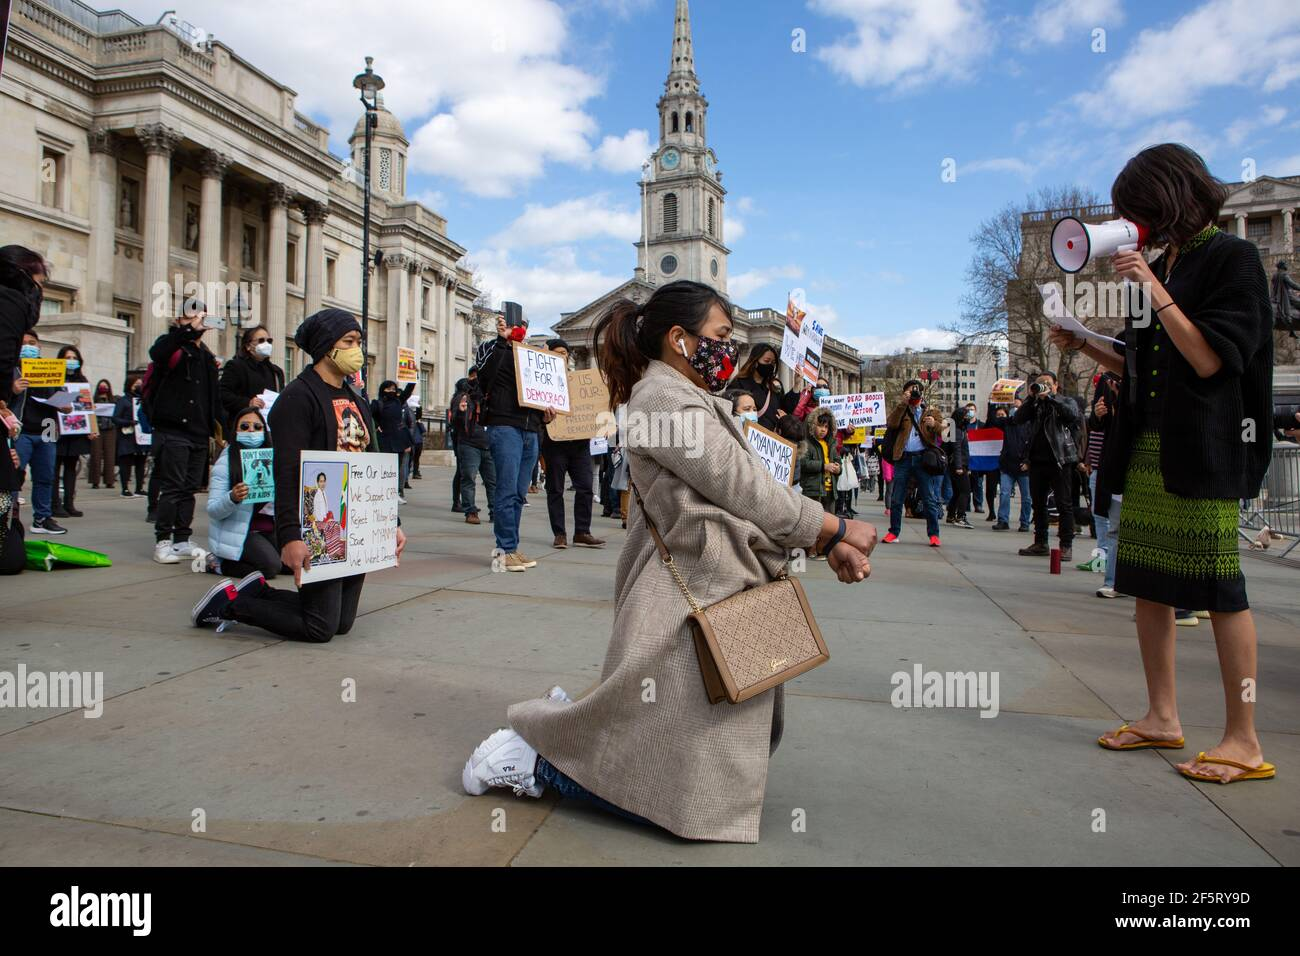 A protester speaks to colleagues through a megaphone while kneeling holding placards expressing their opinion during a peaceful demonstration.Myanmar anti military coup protesters gathered at Trafalgar Square as dozens more are killed in the country. Myanmar police and military soldiers (tatmadow) attacked protesters with rubber bullets, live ammunition, tear gas and stun bombs in response to anti-military coup protesters on Saturday in Myanmar, killing more than 90 people and injured many others. At least 300 people have been killed in Myanmar since the 1 February coup, a UN human rights off Stock Photo